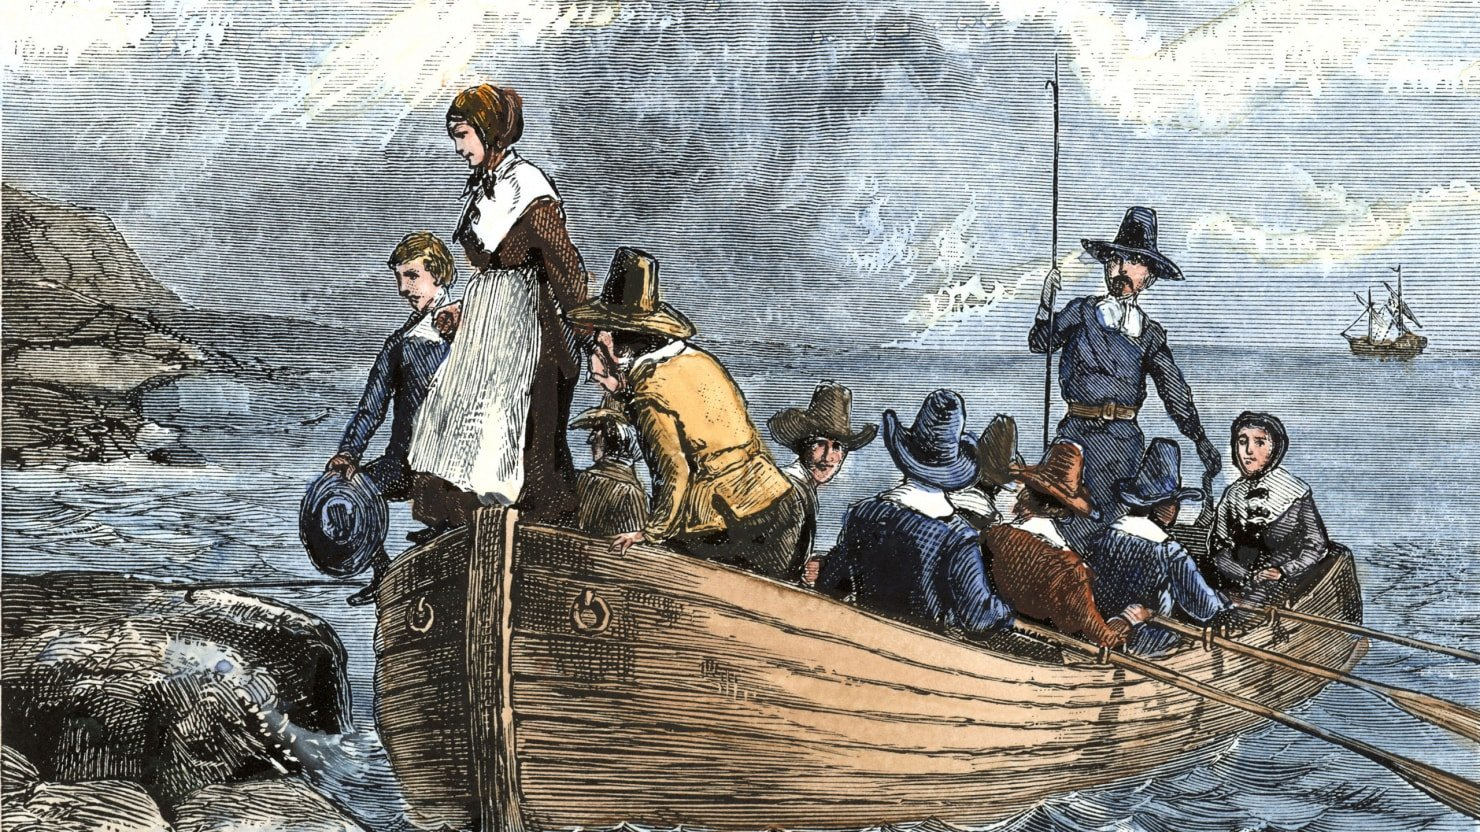 painting of early European colonialists on a row boat